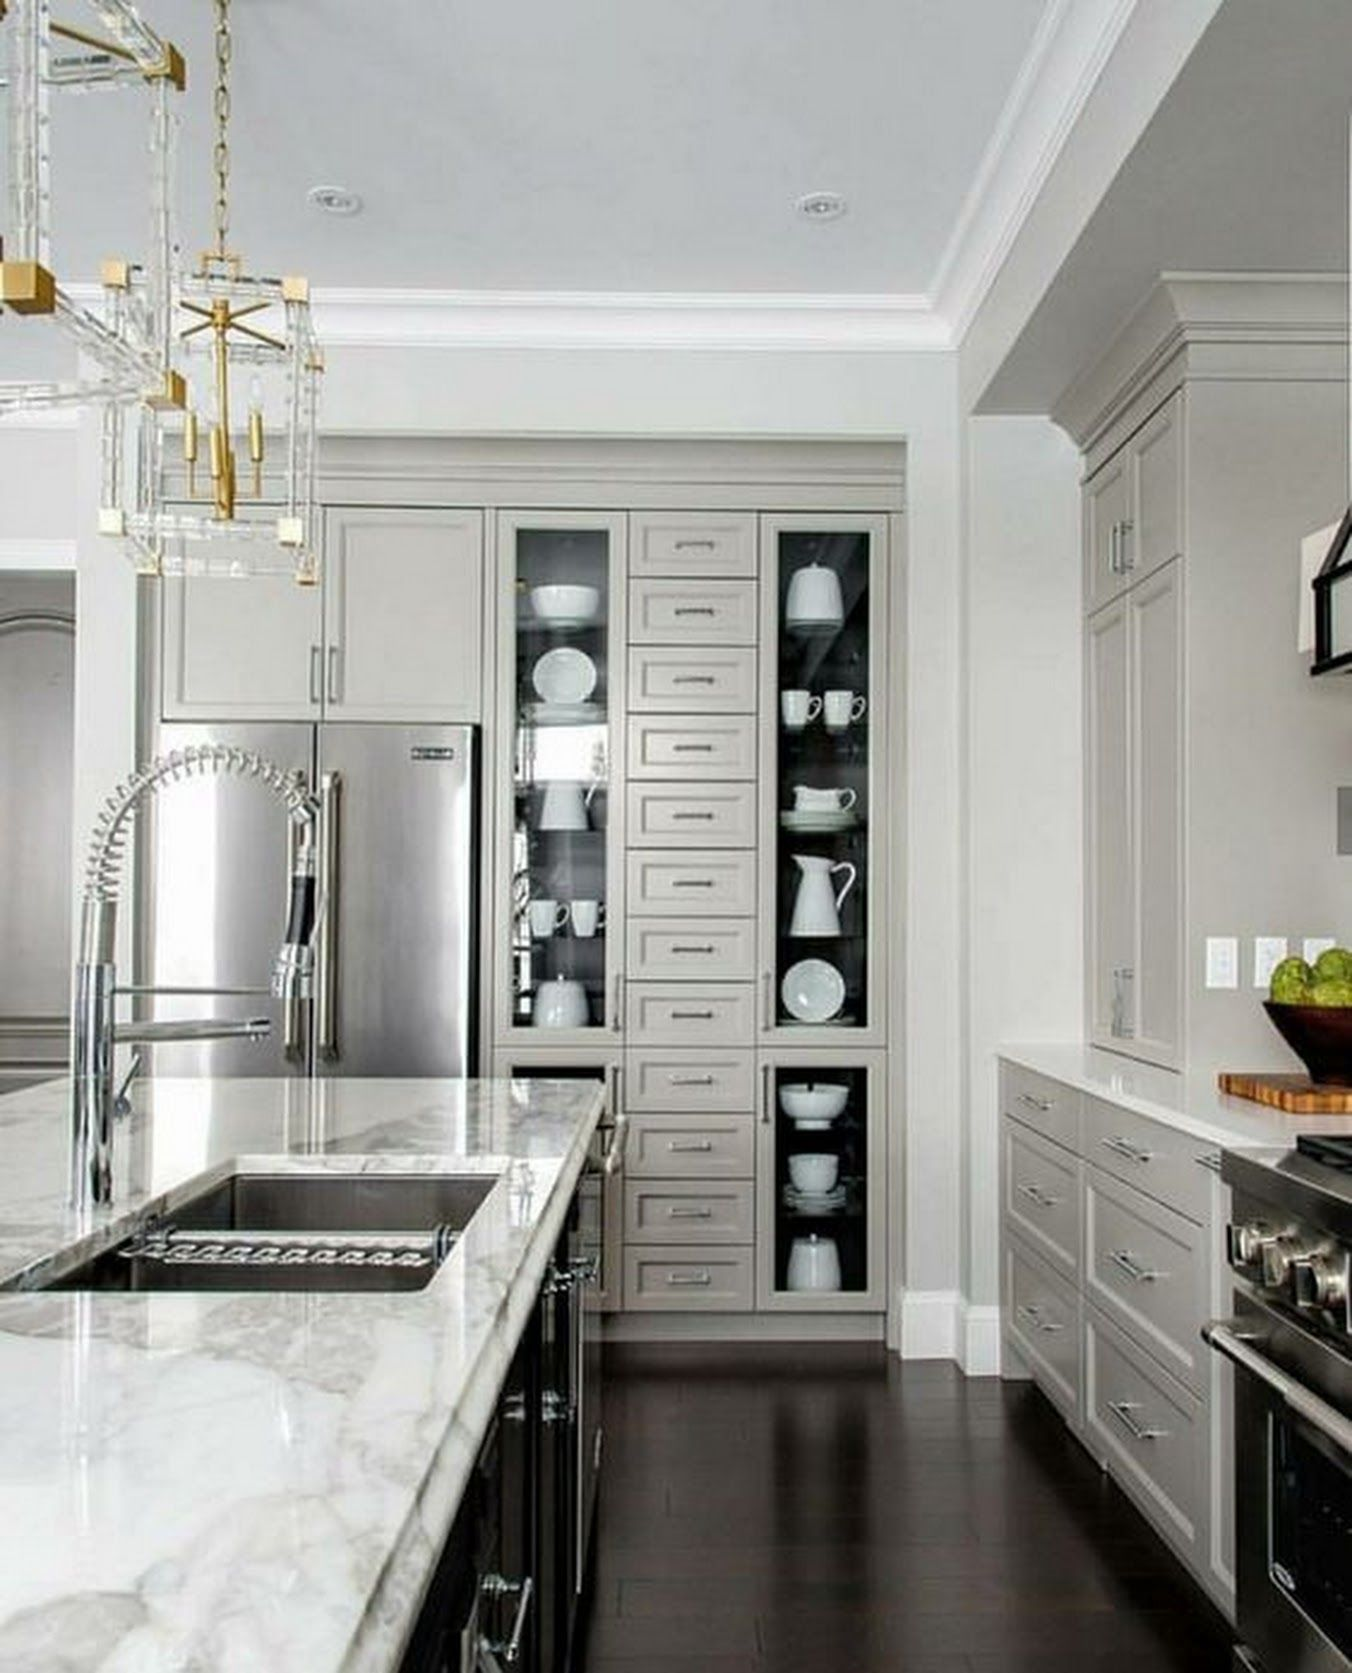 Recorrido Cocinas Top Kitchen Trends Kitchen Inspiration Design Kitchen Design